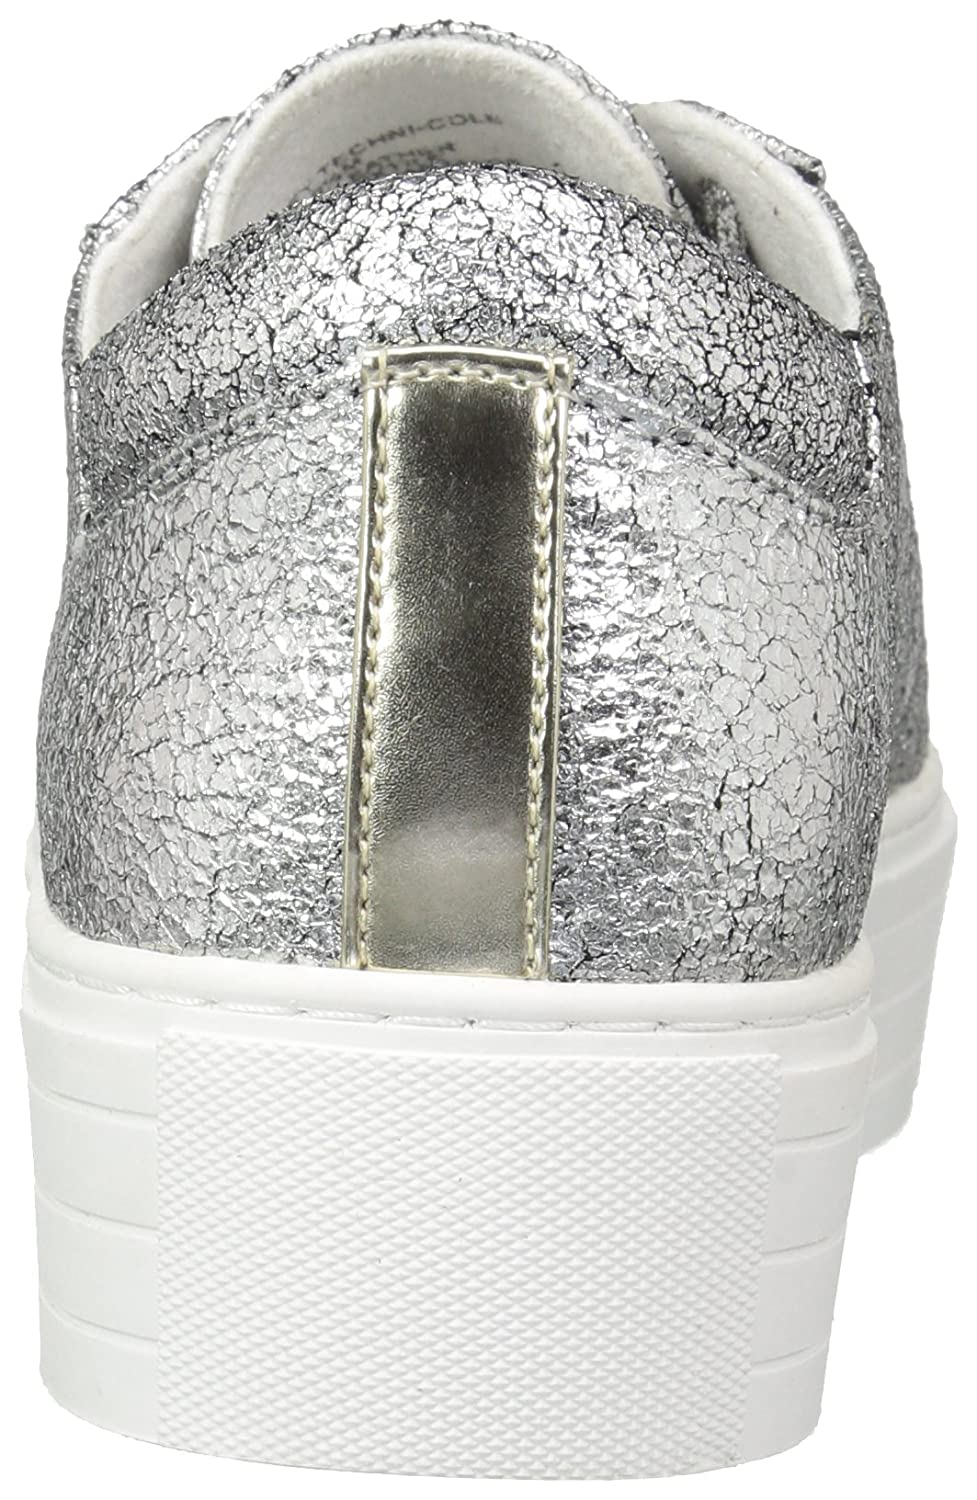 Kenneth Cole New York Women's Abbey Platform Lace up Metallic-Techni-Cole Sneaker B075LFTC7Y 8.5 B(M) US|Silver